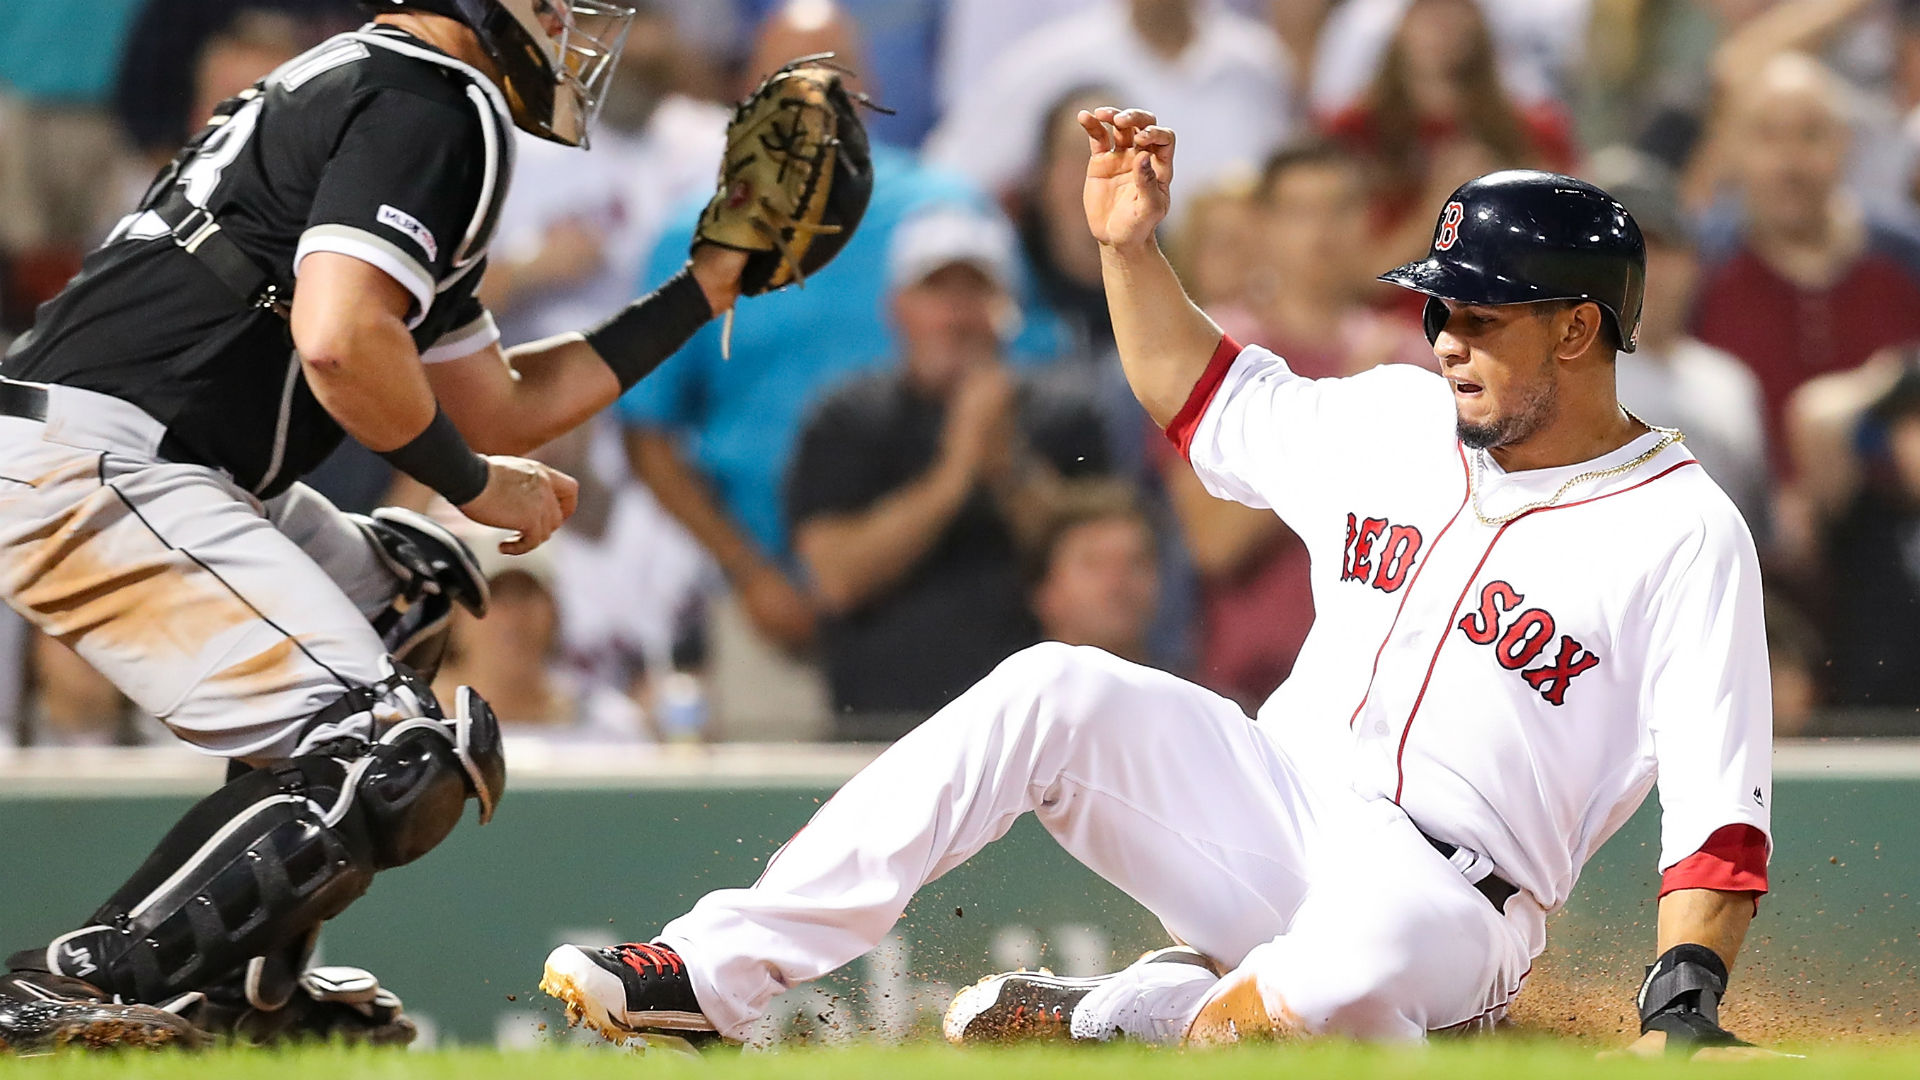 The Red Sox scored runs in the last five innings Monday to pull off a win against the White Sox at Fenway Park.